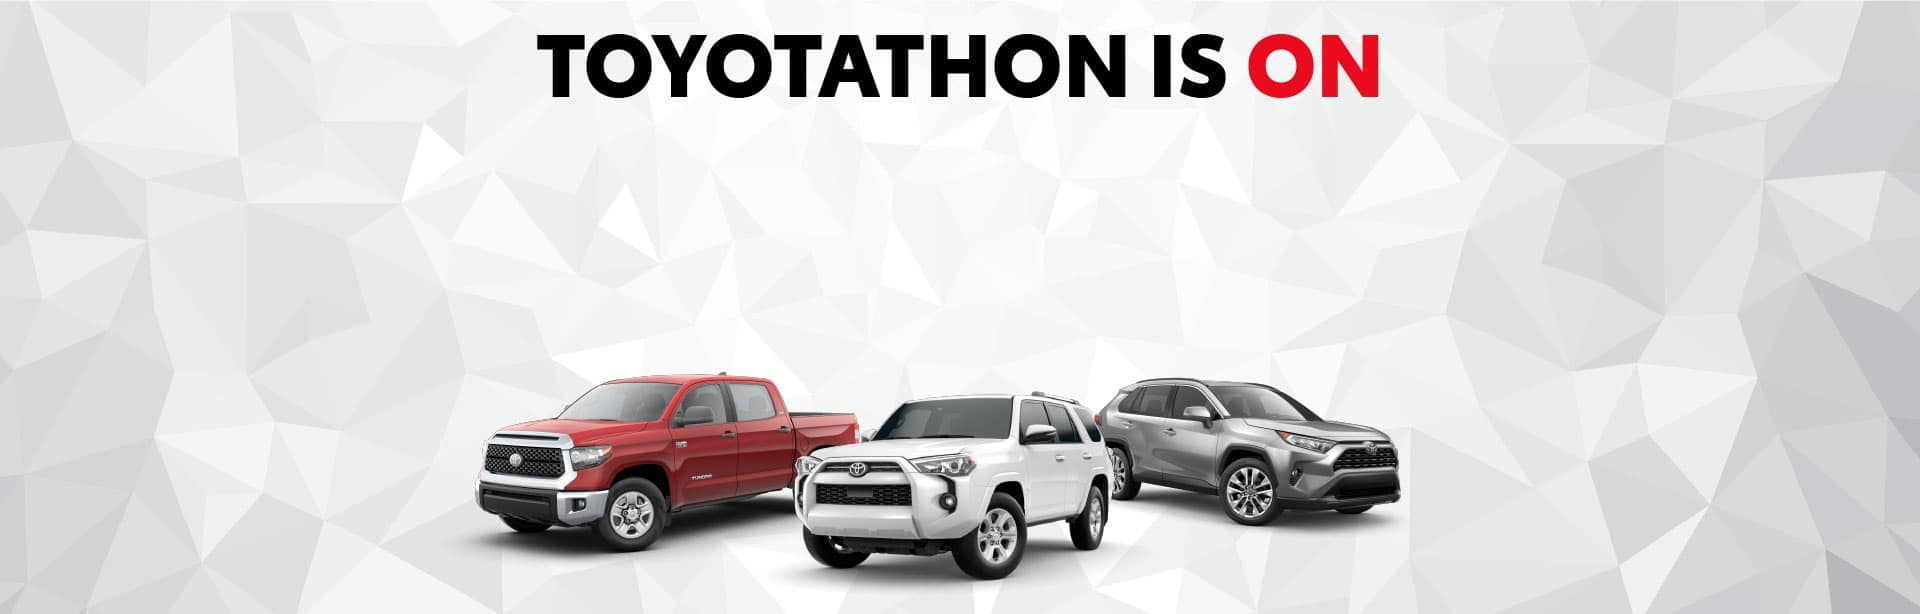 Toyotathon is on slider with a red toyota tundra, white toyota 4runner and grey toyota rav4 lined up side by side